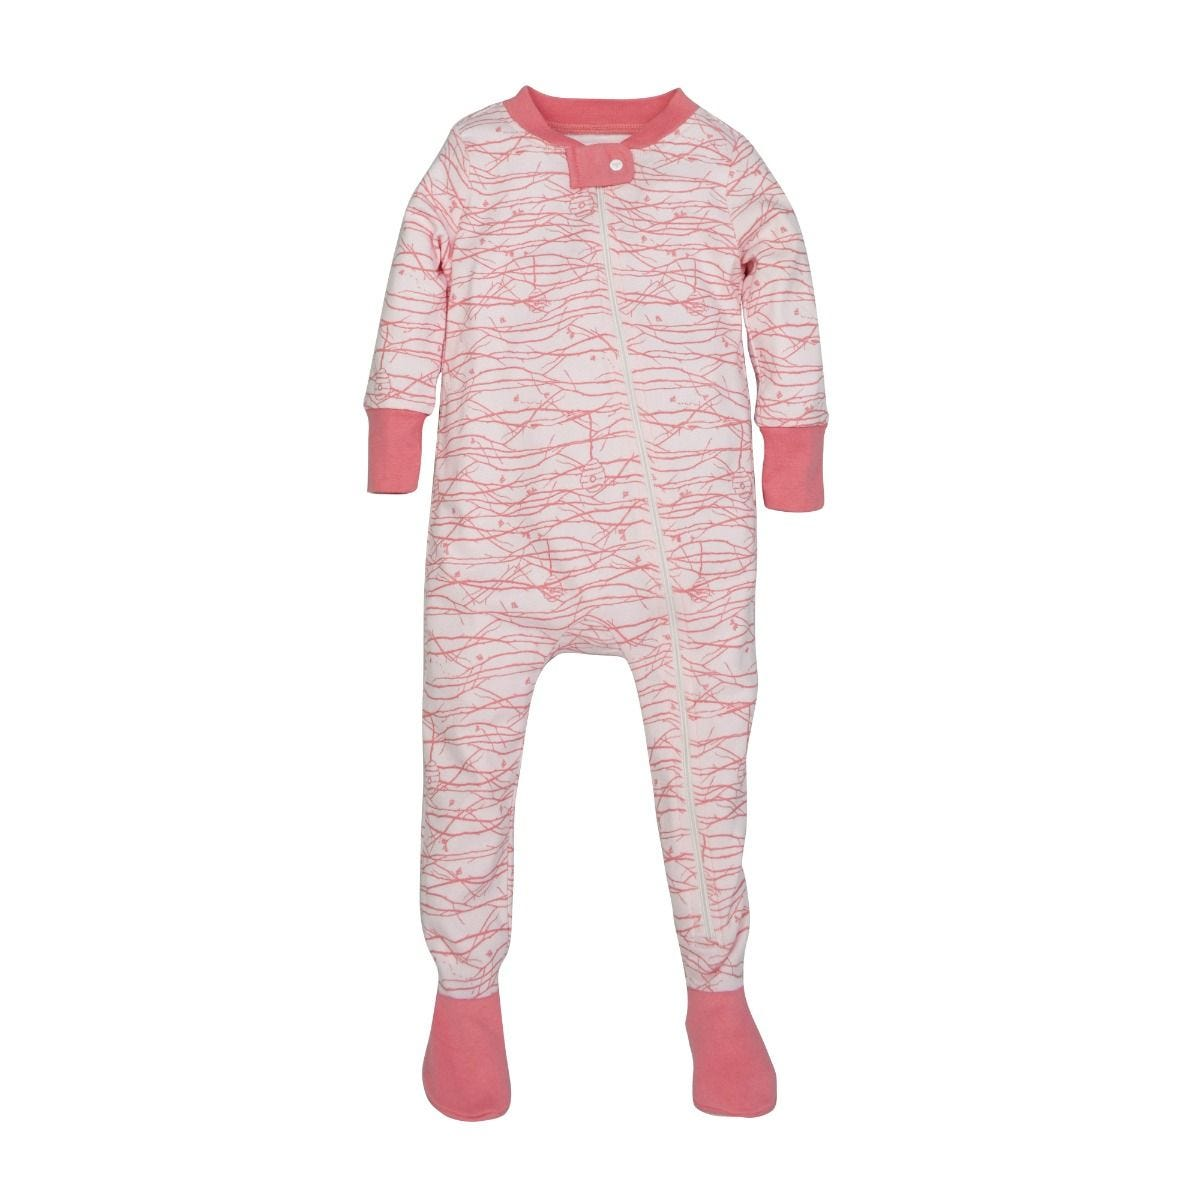 1e6a3ea7886a Autumn Tree Organic Baby Zip Up Footed Pajamas